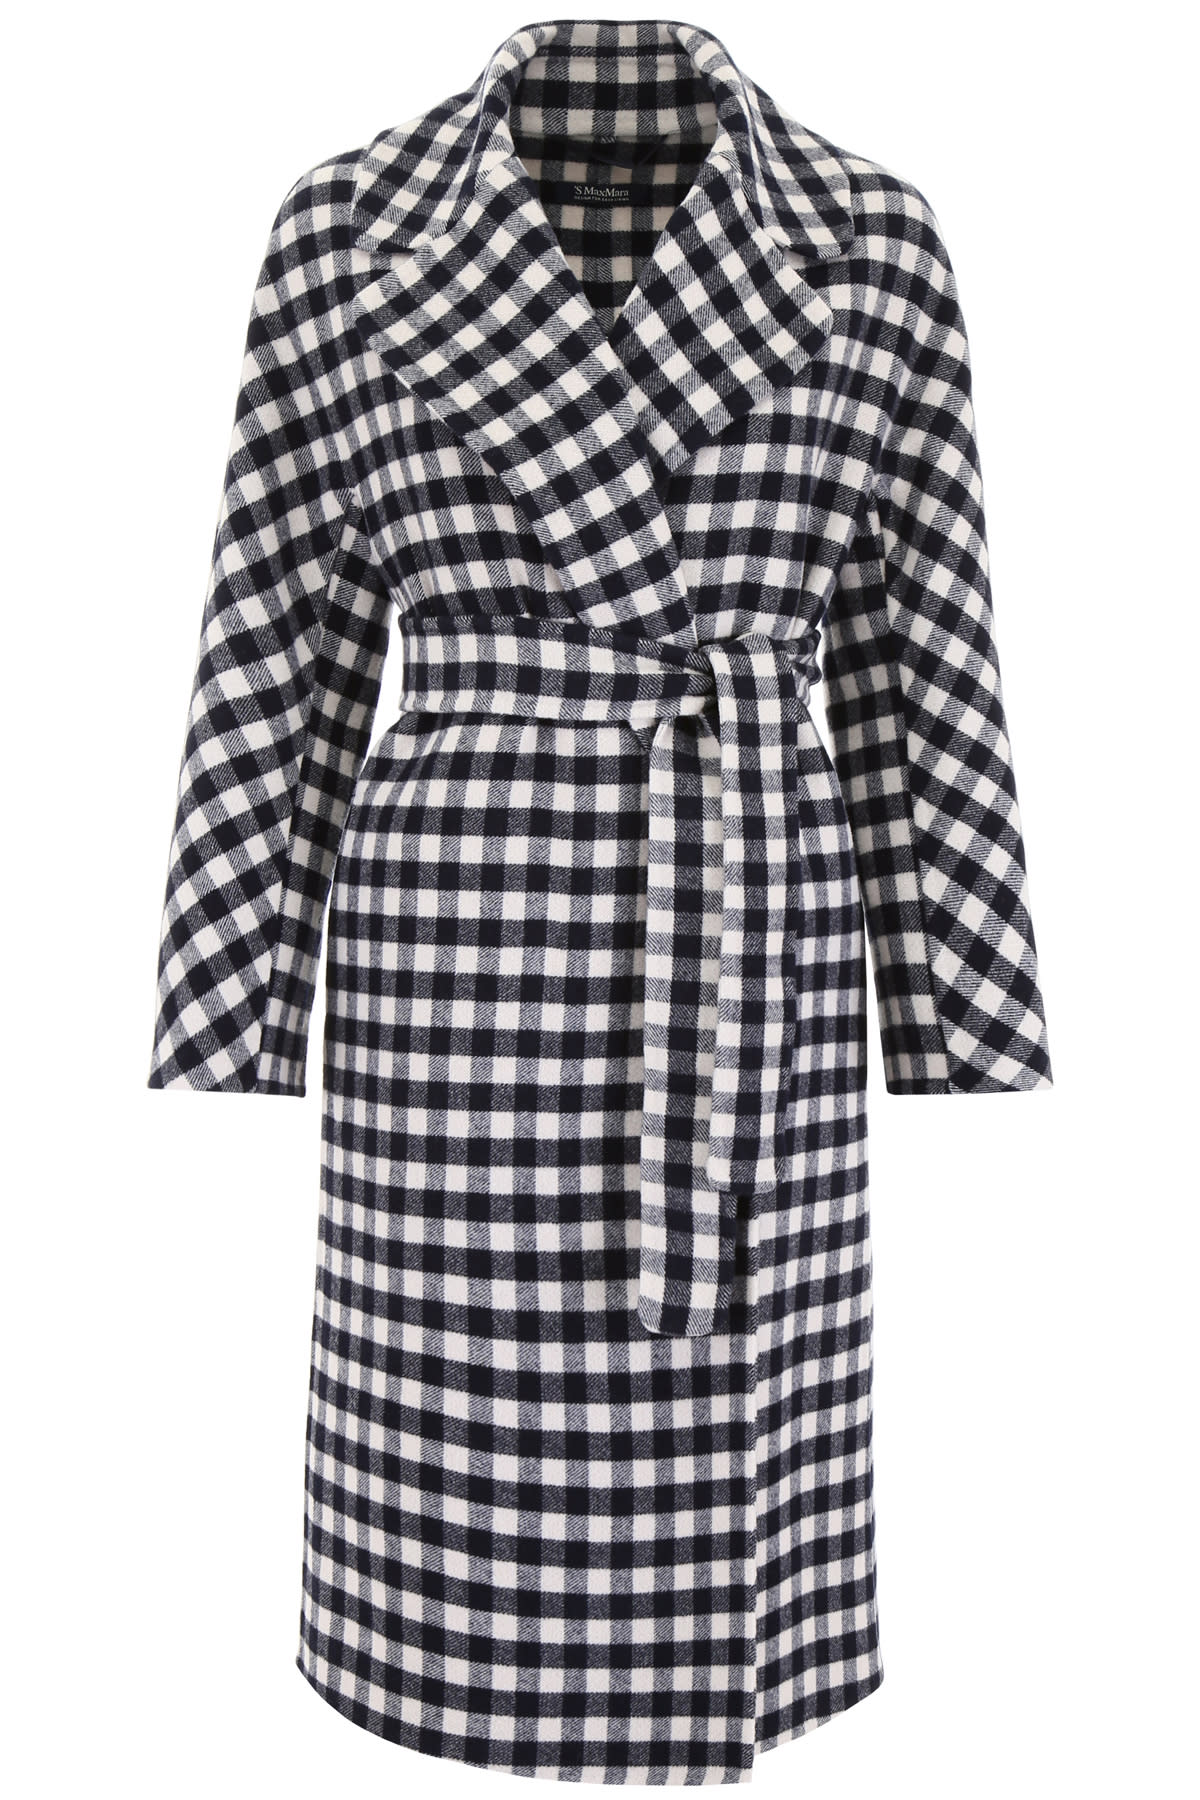 S Max Mara Here is The Cube Zandra Coat